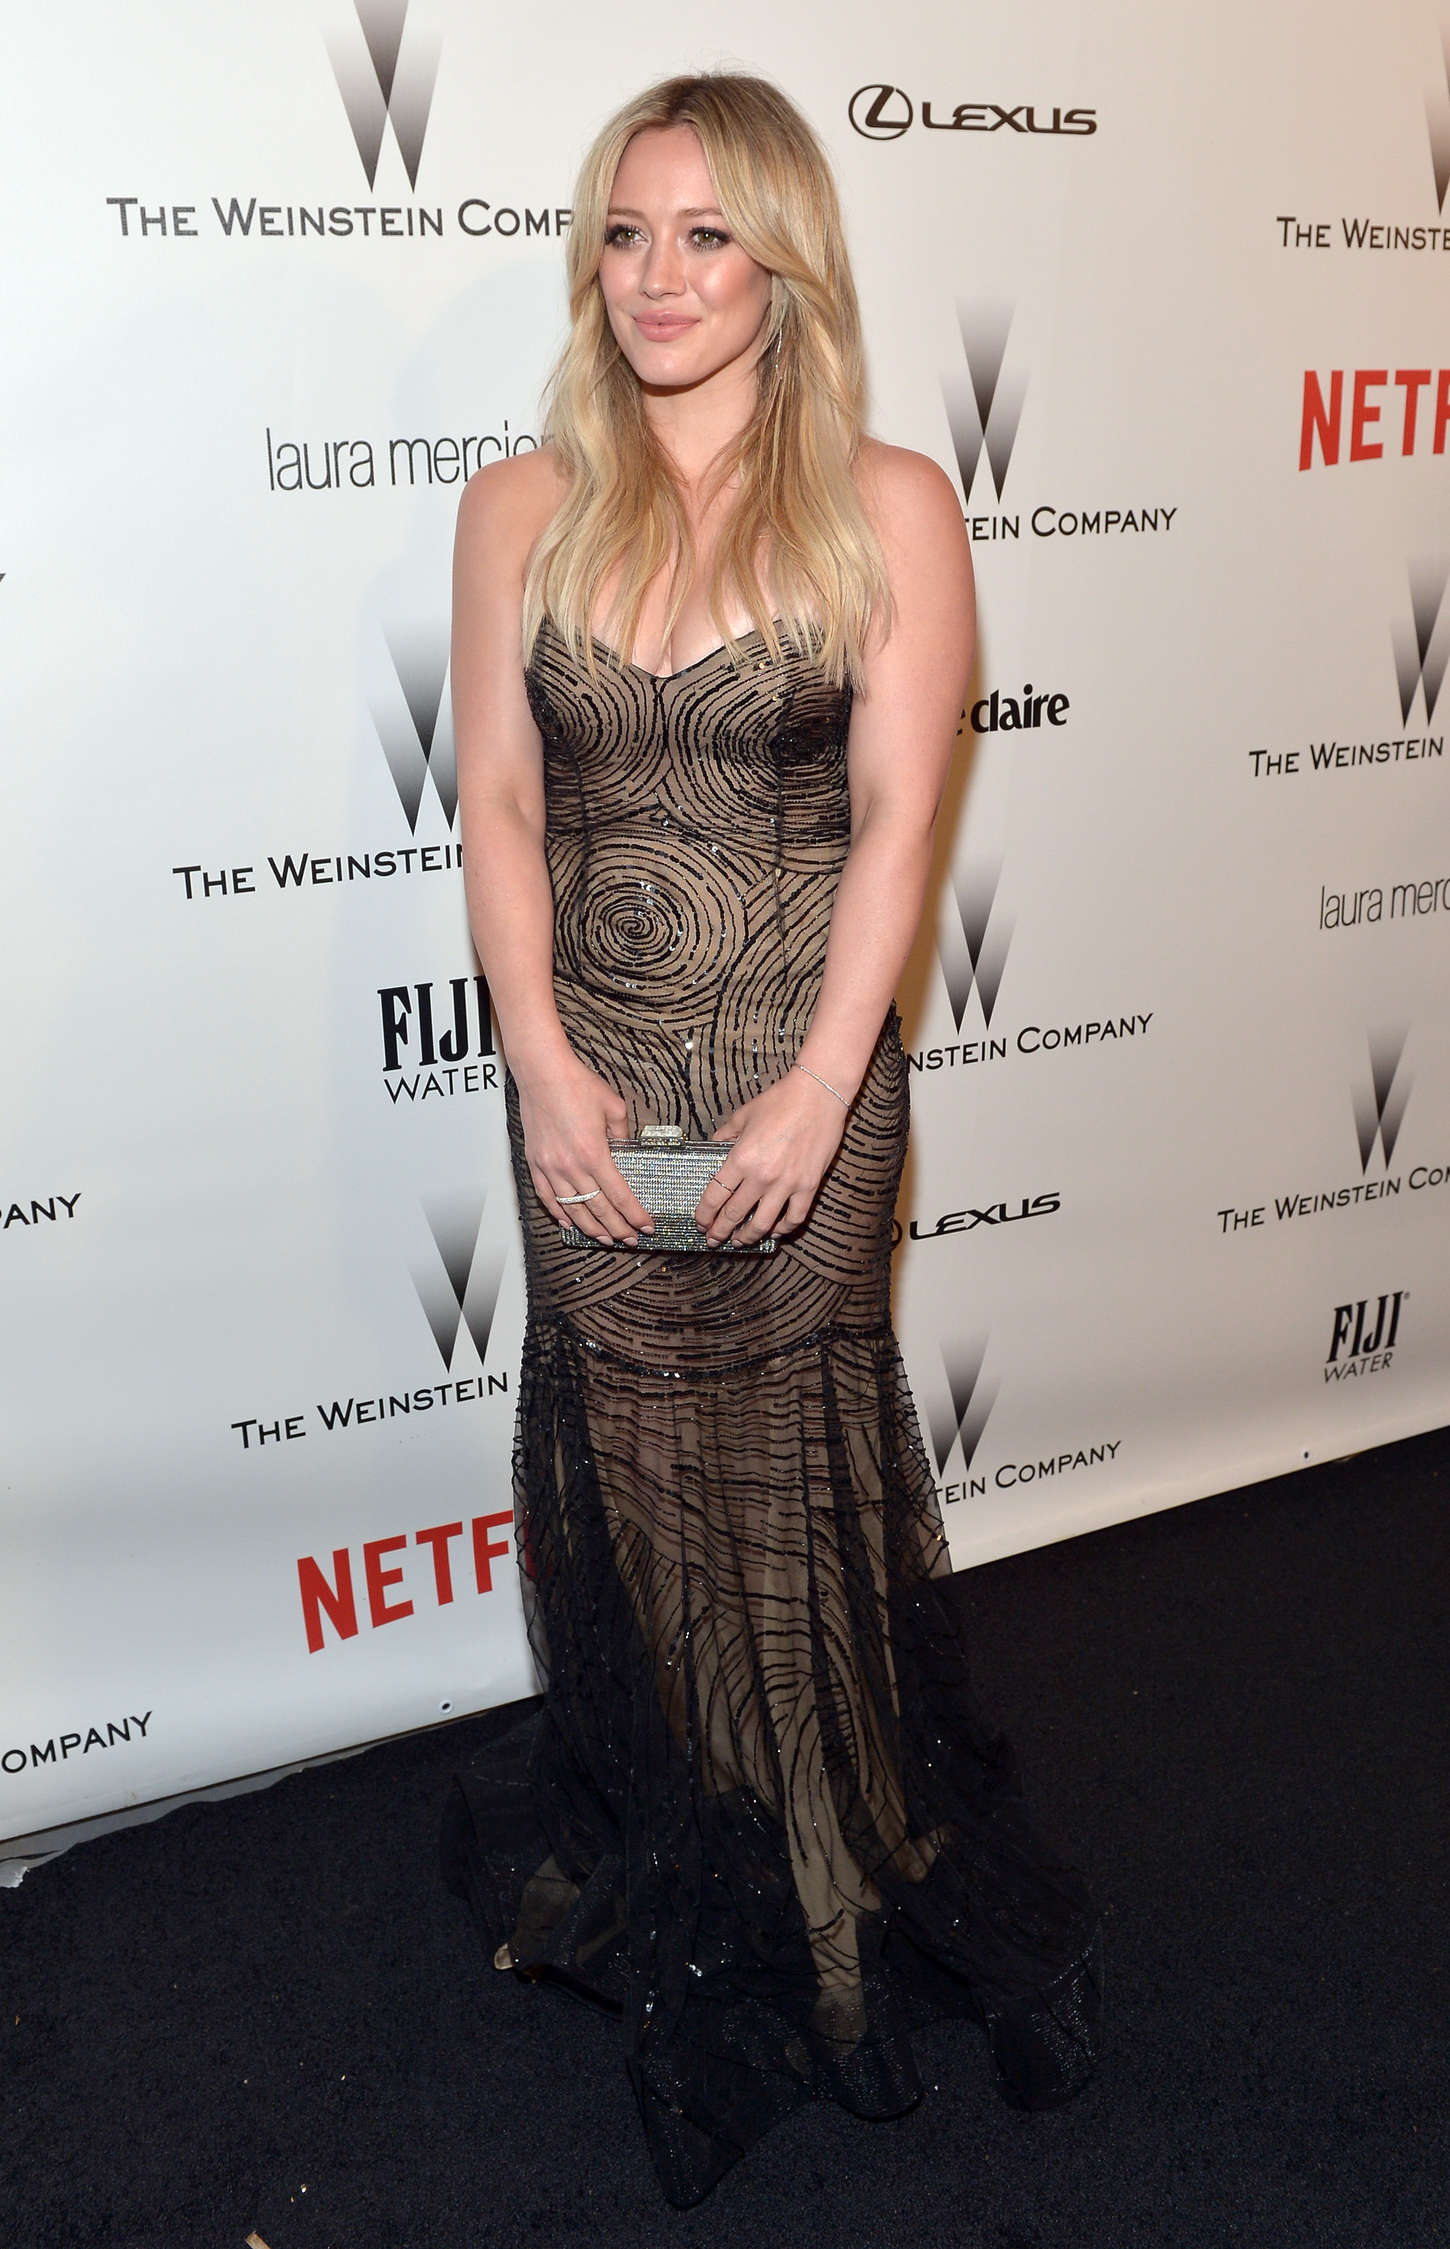 Hilary Duff 2015 : Hilary Duff: 2015 The Weinstein Company and Netflixs Golden Globes Party -07